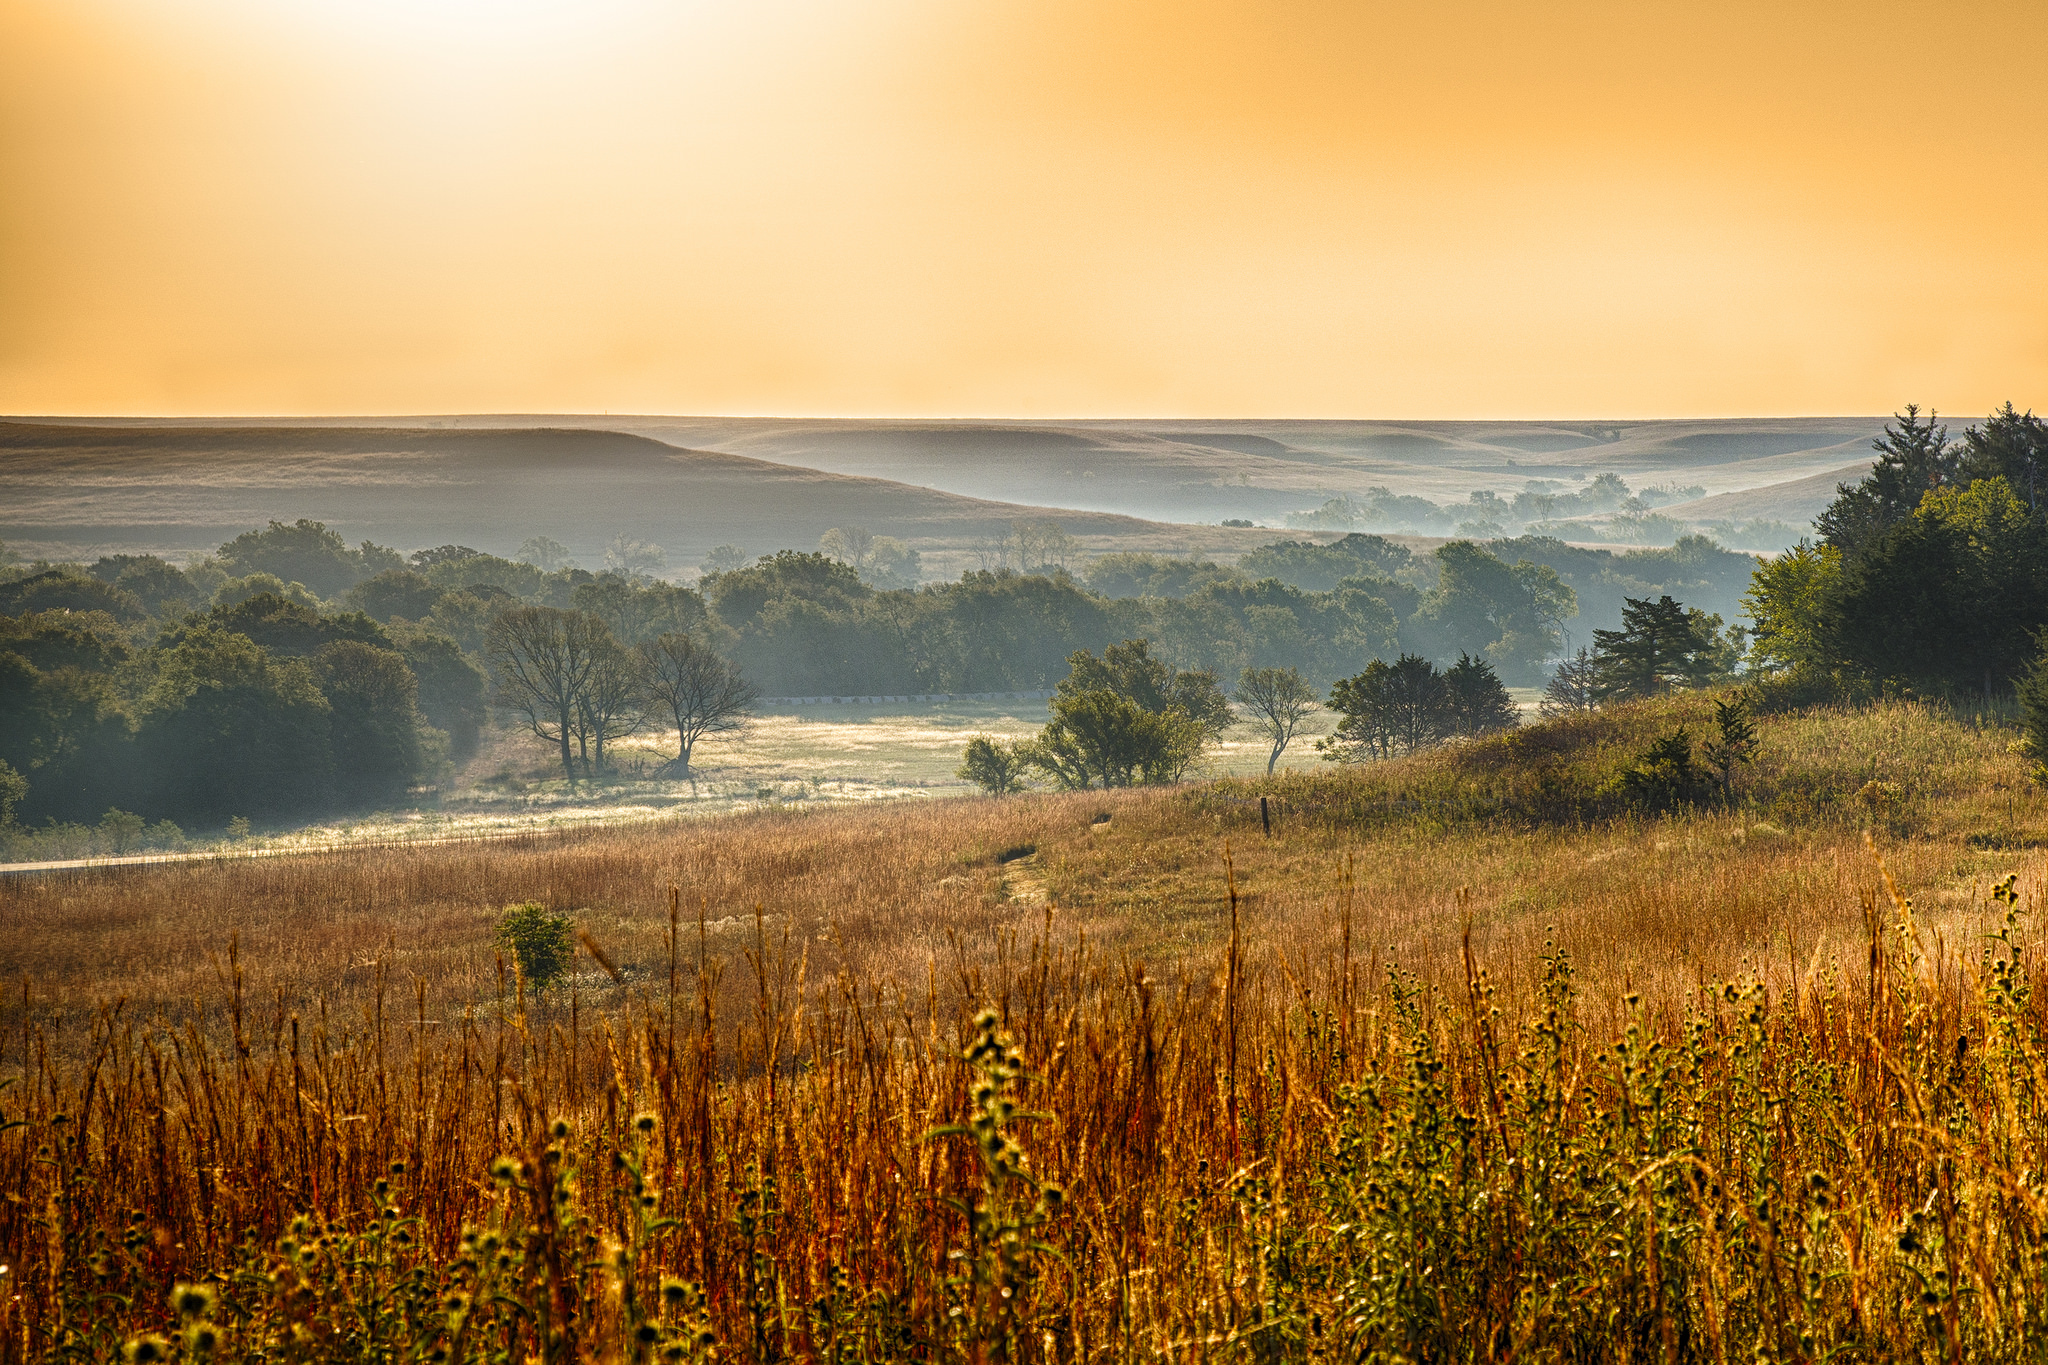 Kentucky Fall Wallpaper Take This Amazing 2 Day Kansas Staycation If You Need A Break